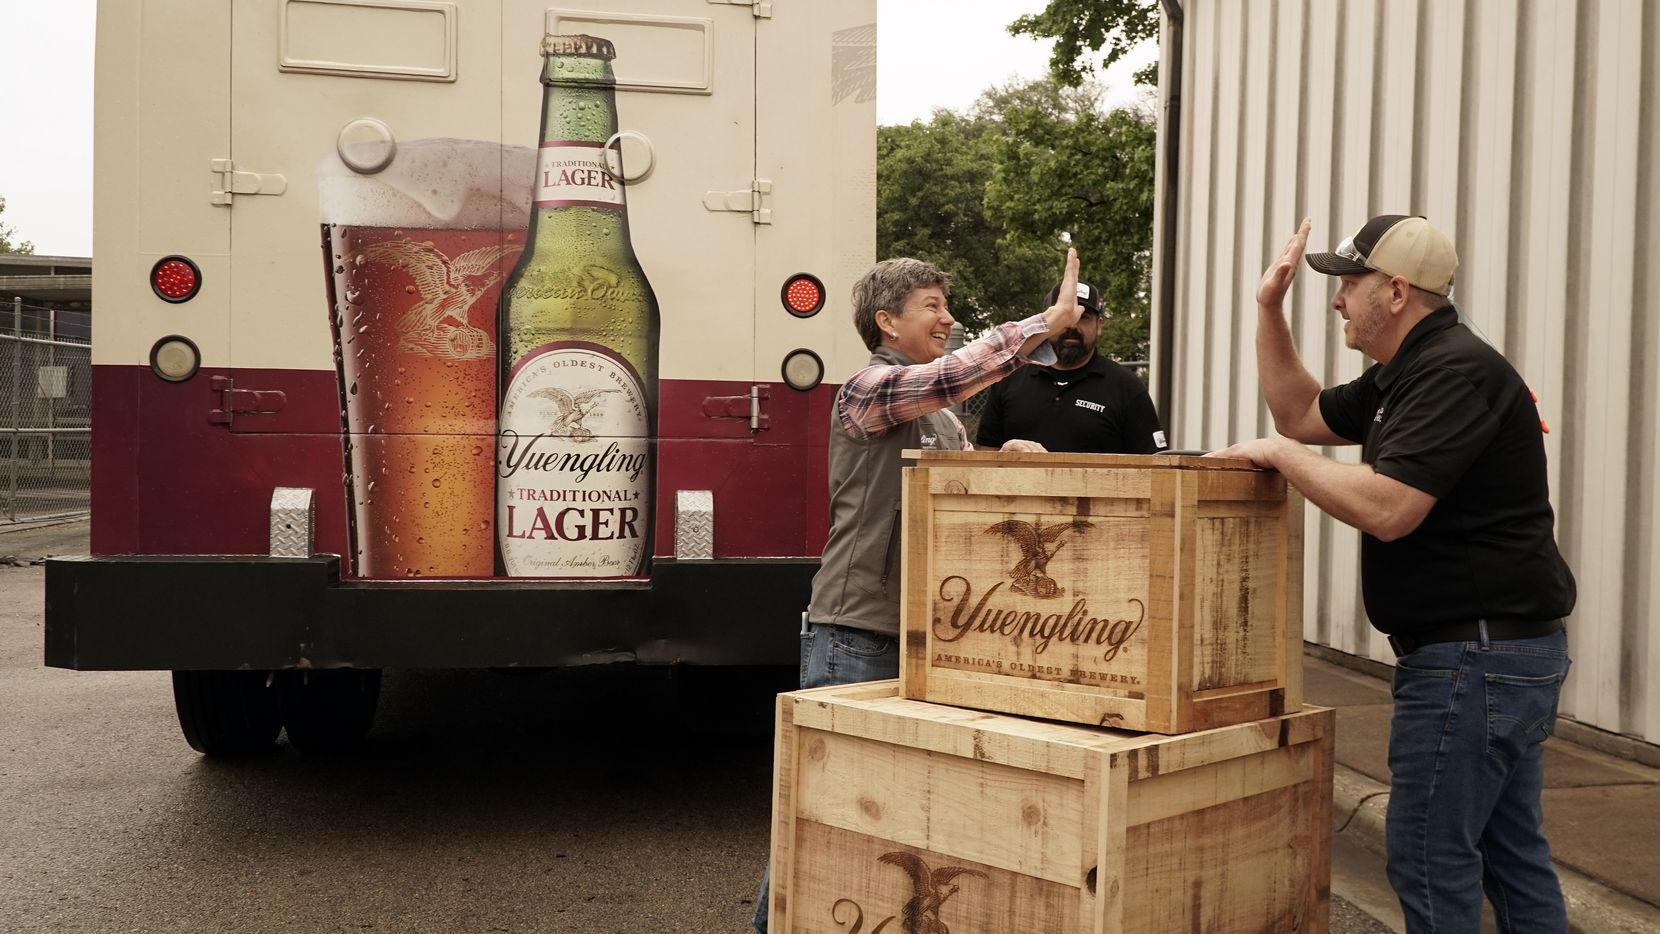 Jen Yuengling and Jim Crawford delivered secret family recipes in May 2021 to the Molson Coors brewing facility in Fort Worth, where the Pennsylvania beers were brewed in Texas for mass production. Starting Aug. 23, 2021, four Yuengling beers go on sale at major retailers in the Lone Star State.